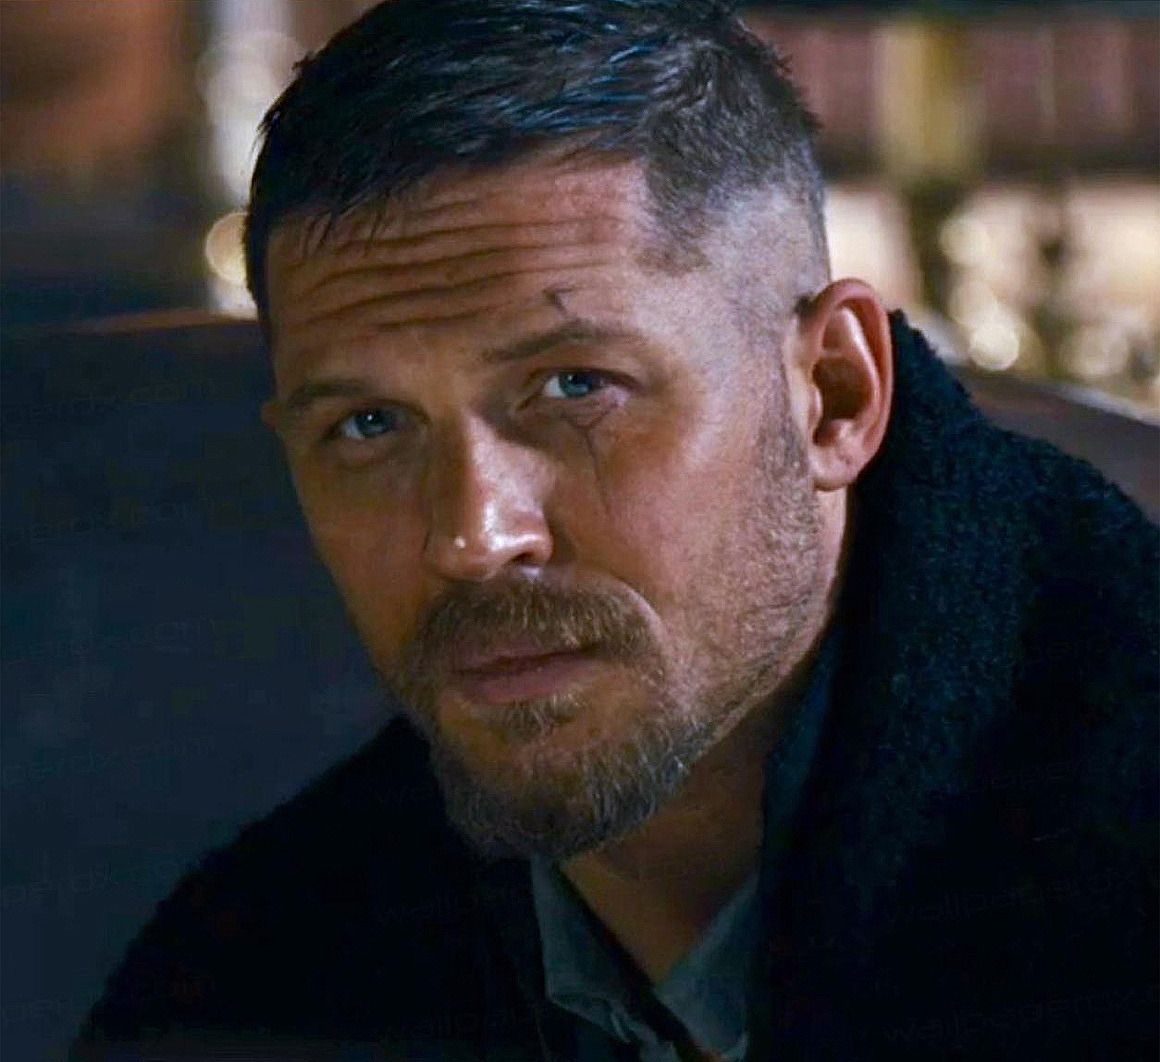 Taboo Season 2 Ridley Scott Tells Aspiring Filmmakers They Have No Excuses Scott Also Revealed That The Rece Tom Hardy Tom Hardy In Taboo James Delaney